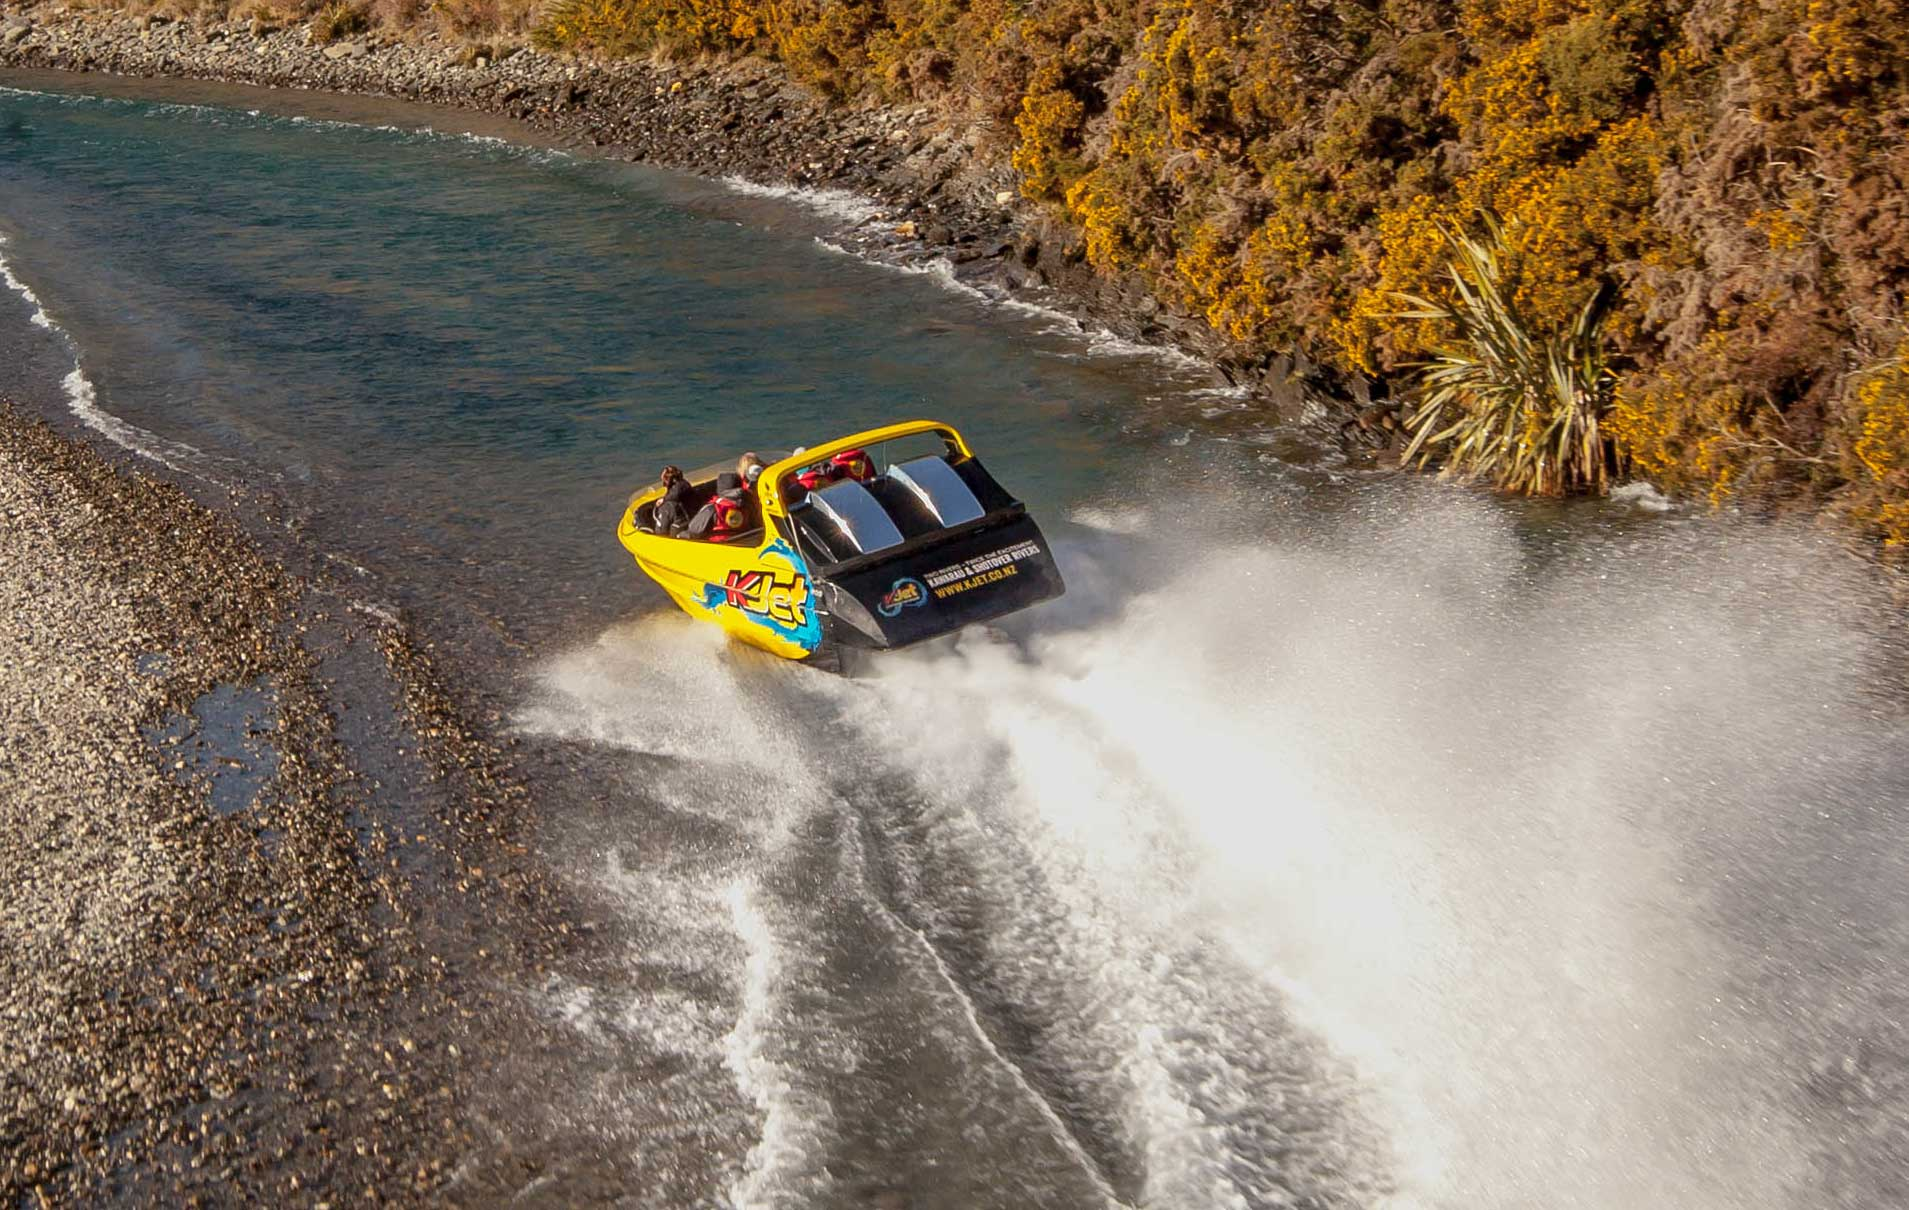 Jet boating with the world's-first Jet Boat company KJet.